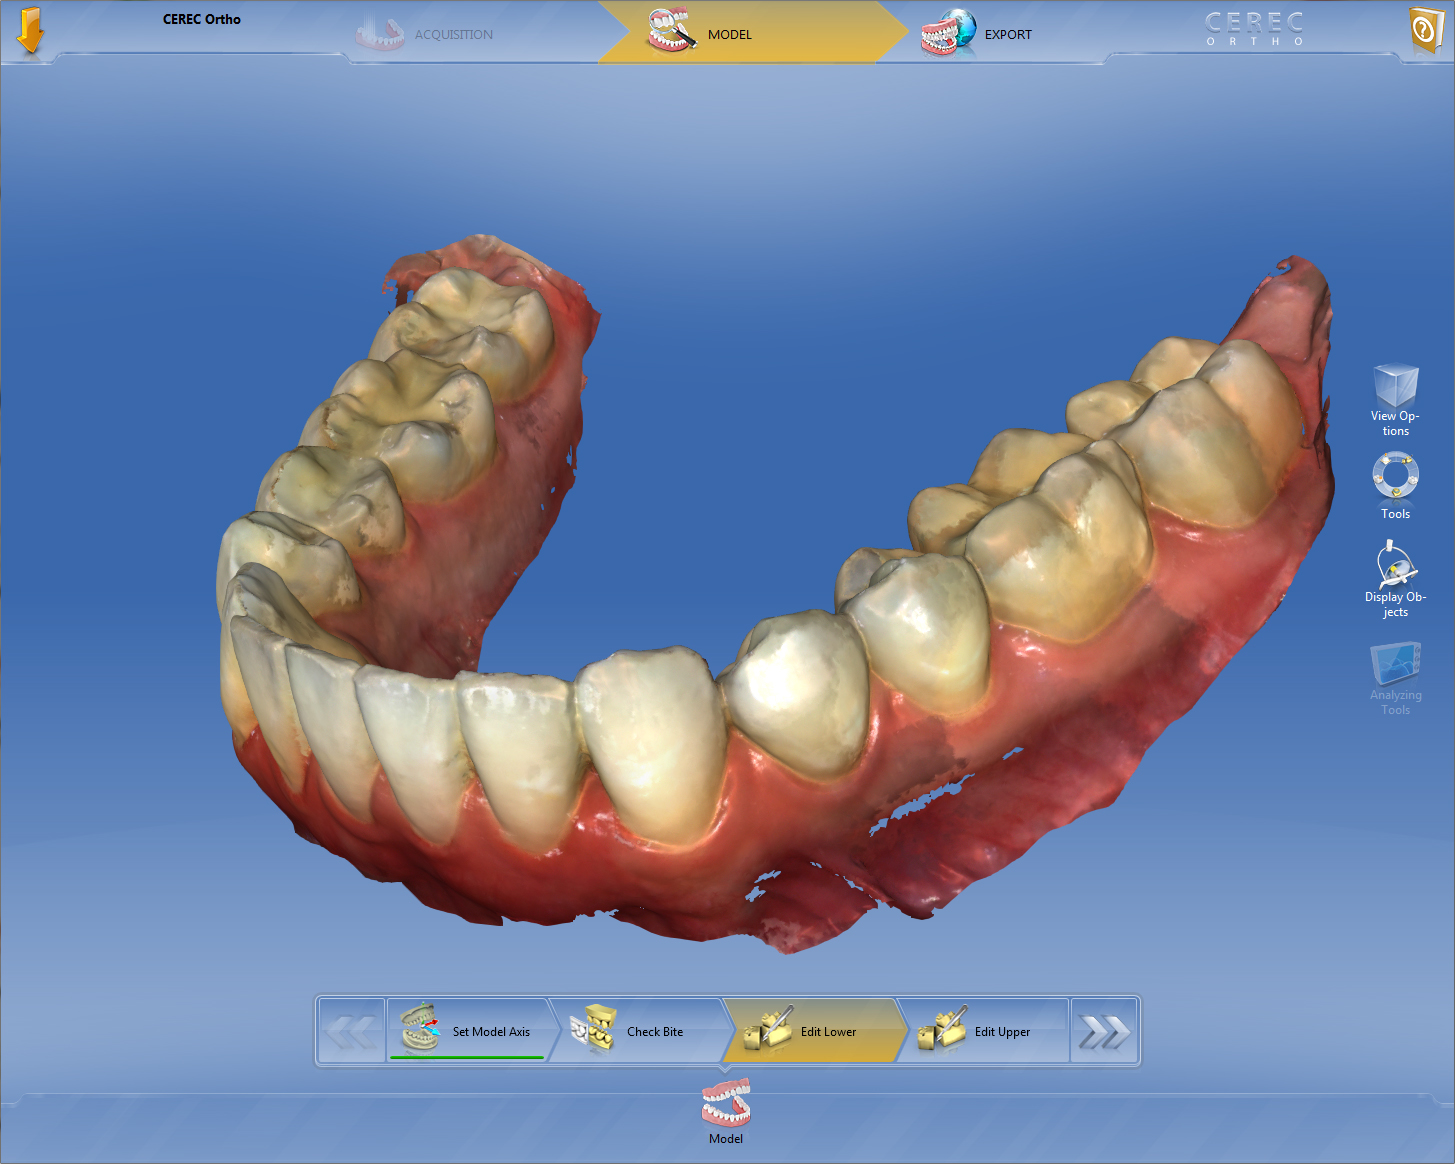 cerec ortho